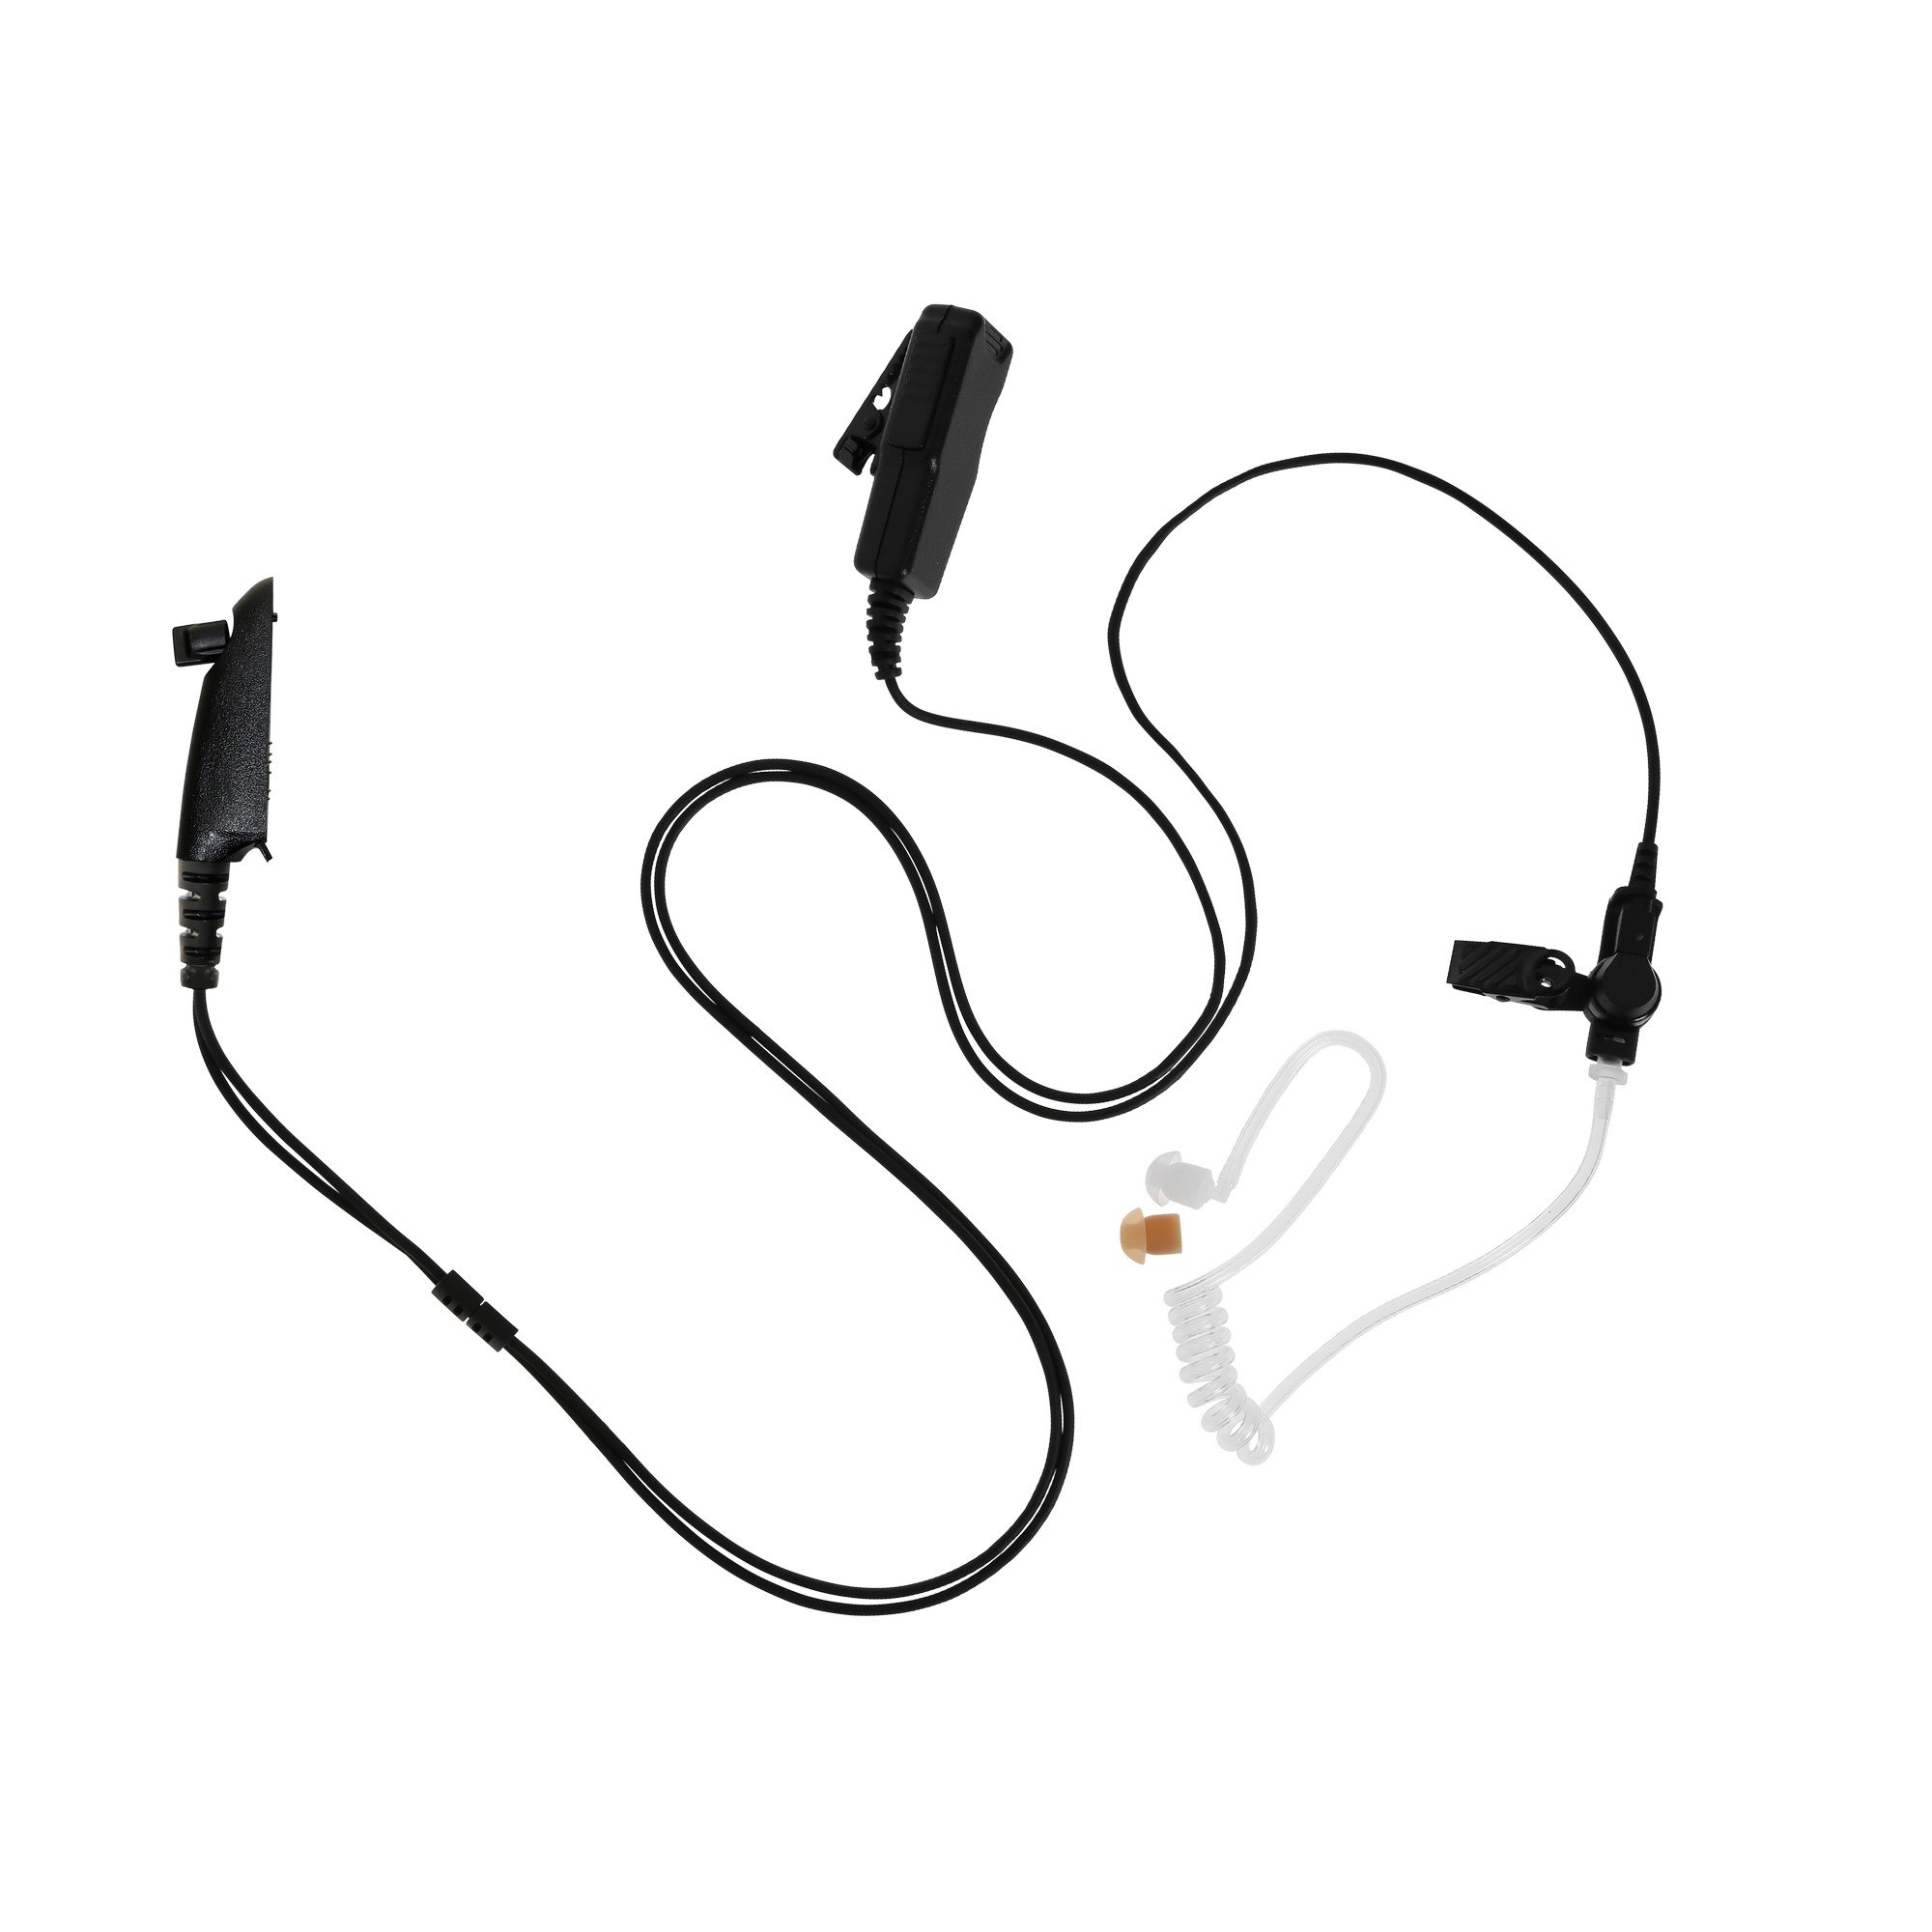 Maxtop ASK4032-M5 2-Wire Acoustic Ear Tube Surveillance Kit for Motorola HT-750 HT-1250 GP328 MTX8250 RCA BR950